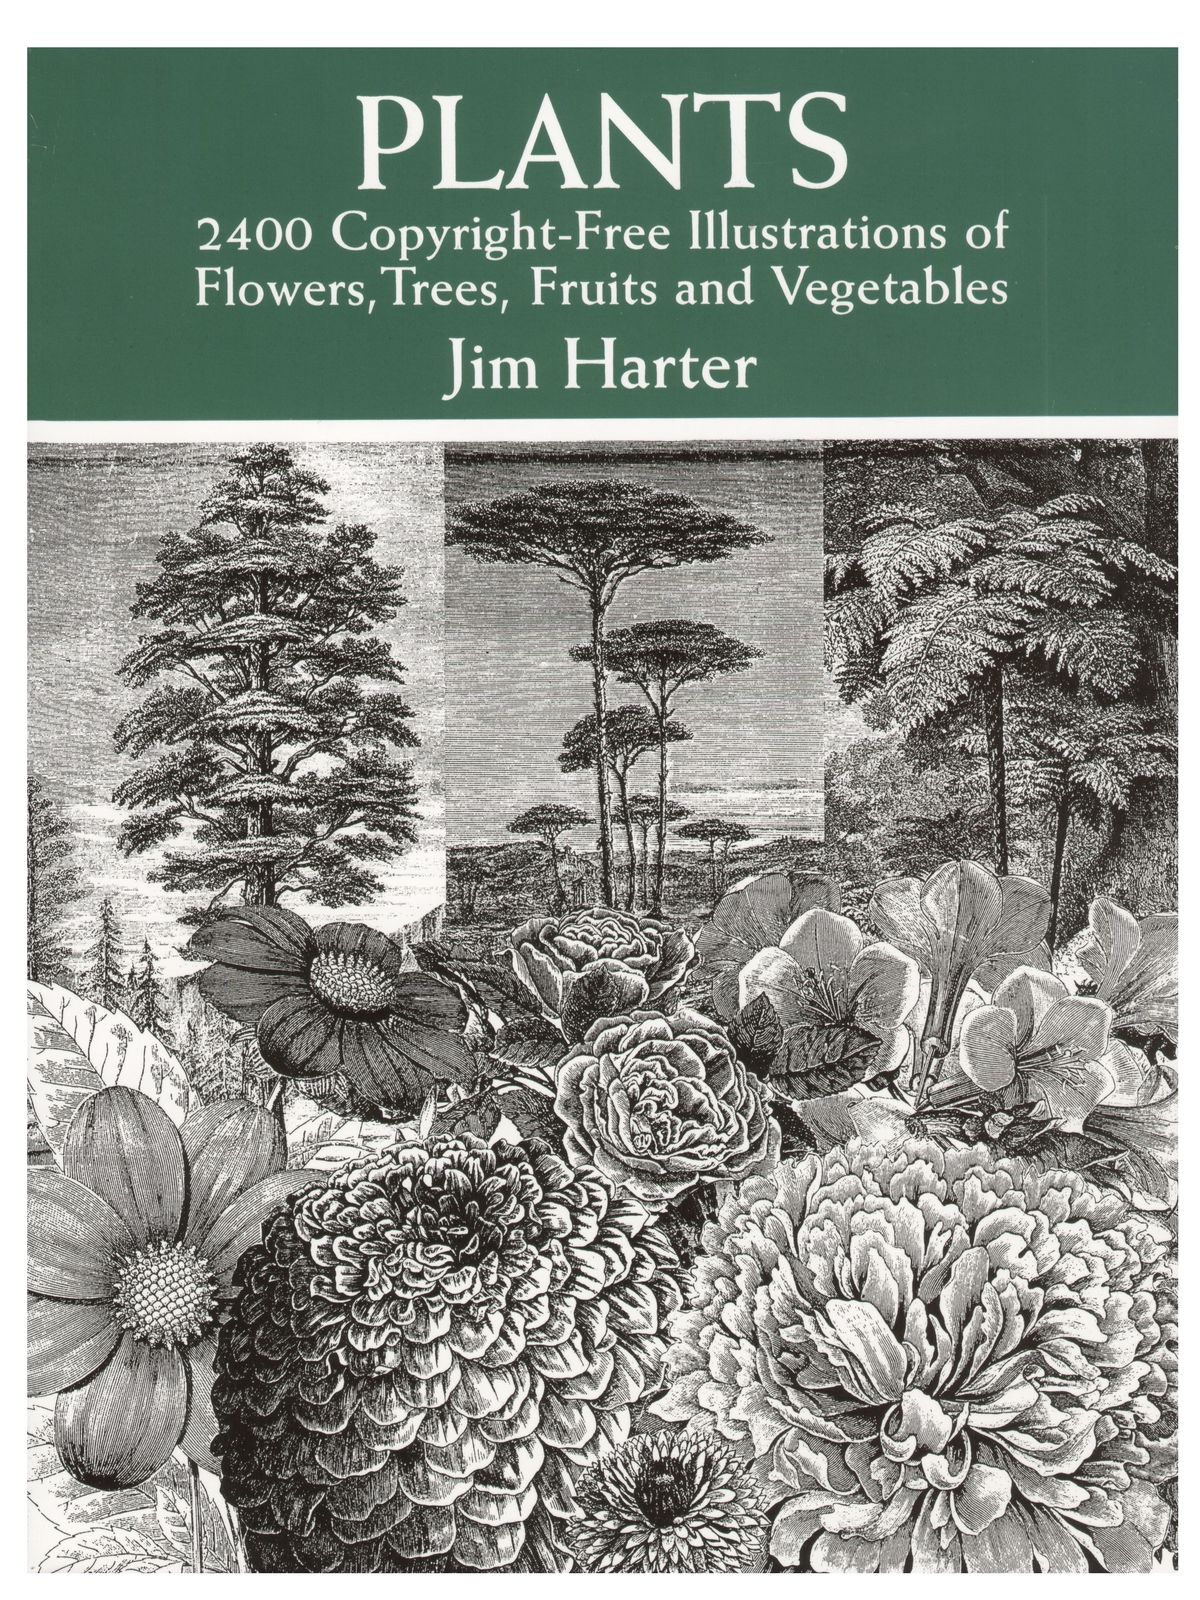 Plants: 2400 Copyright-Free Illustrations